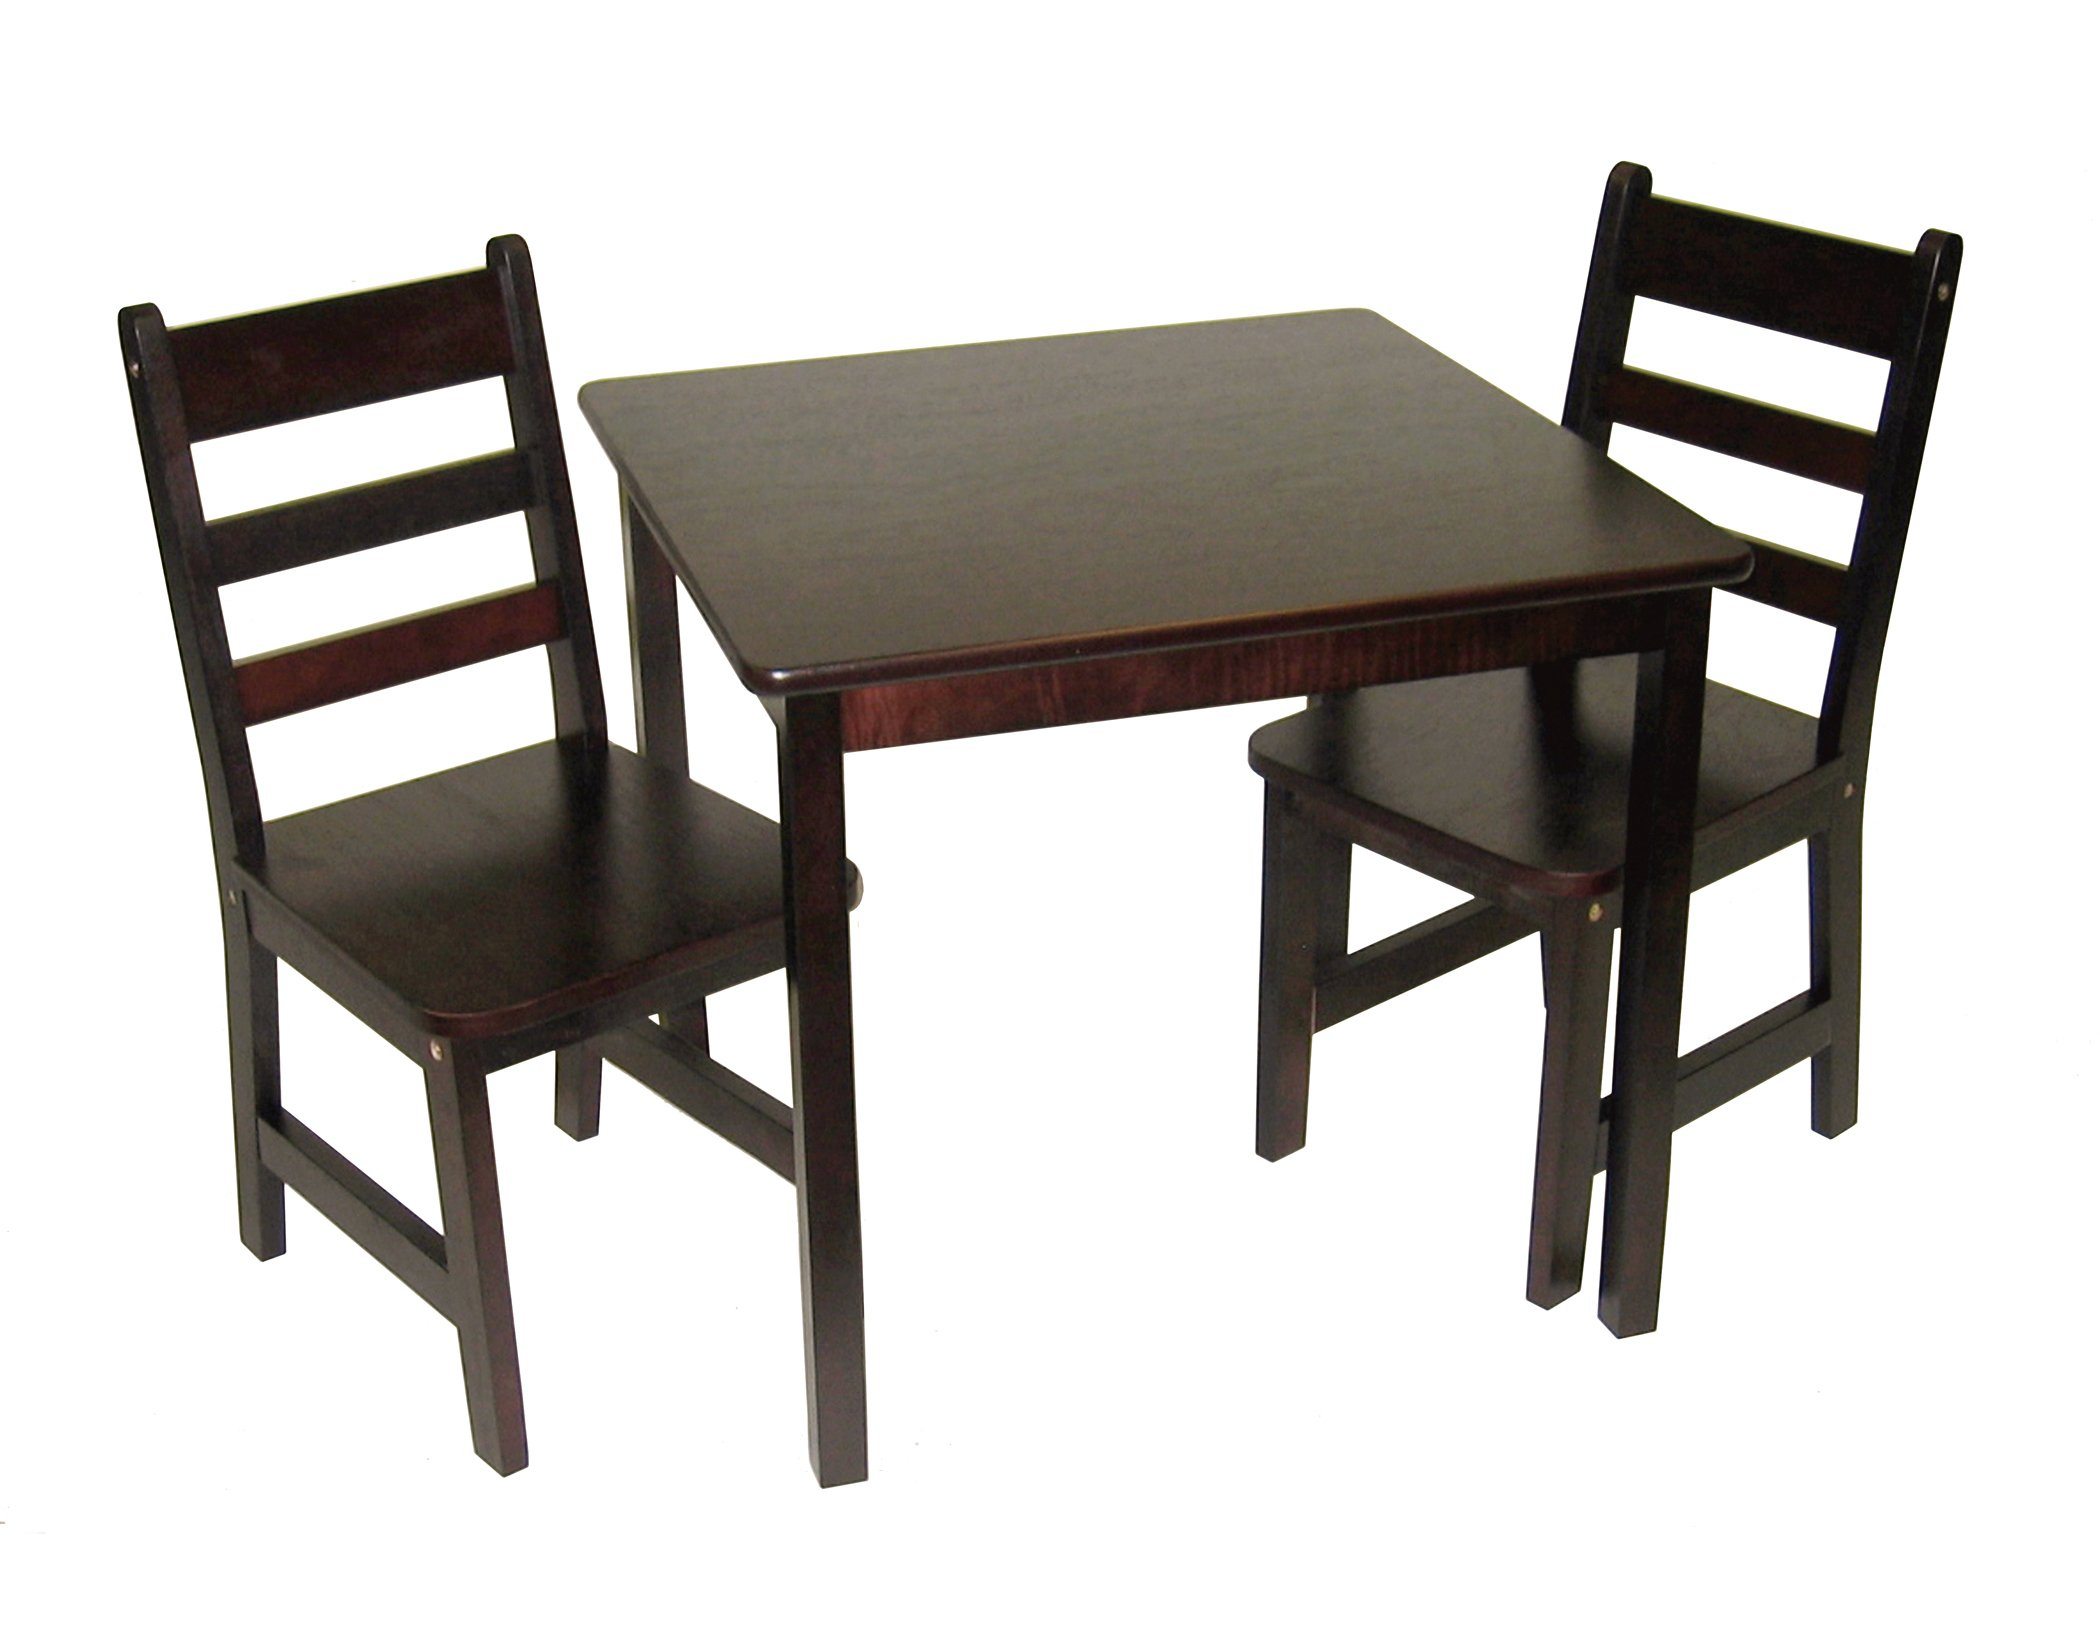 Lipper International 514E Child's Square Table and 2 Chairs, Espresso Finish